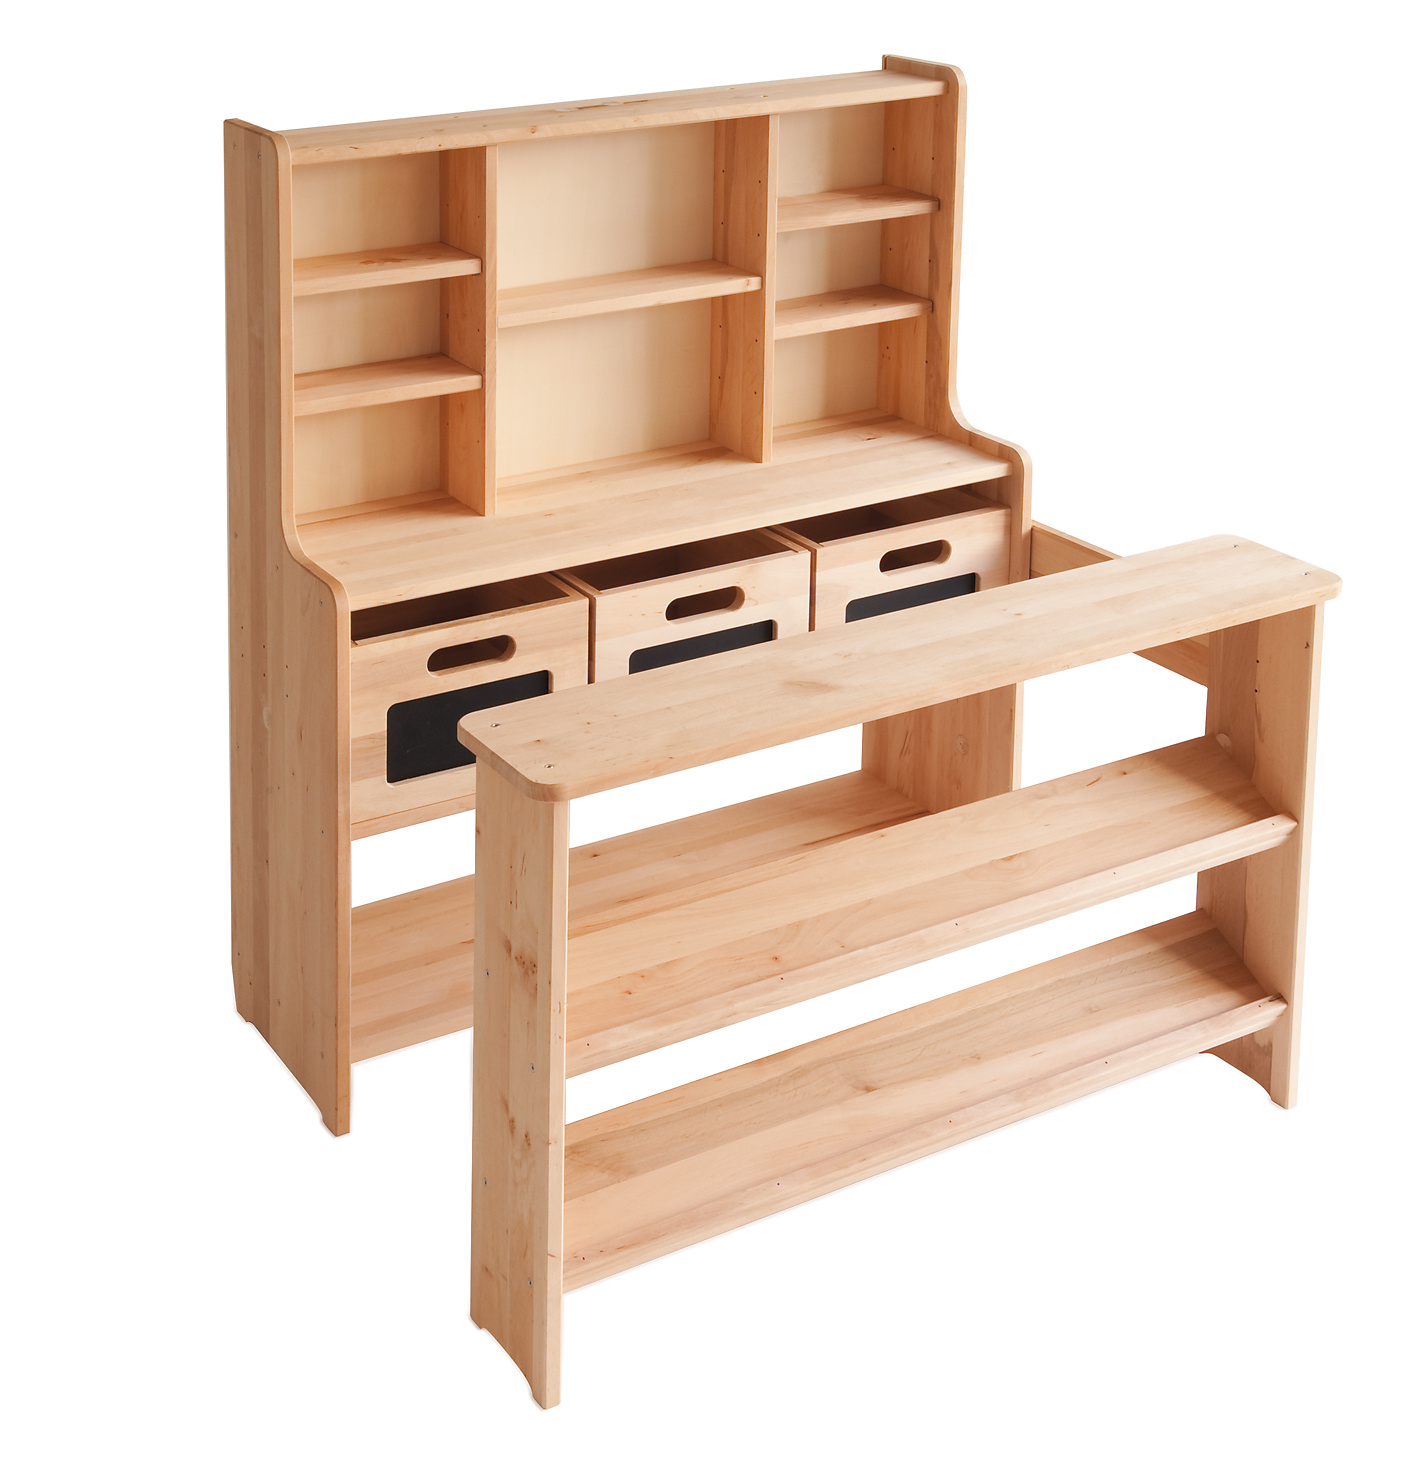 hochwertiger kaufmannsladen kaufladen f r kinder aus holz. Black Bedroom Furniture Sets. Home Design Ideas